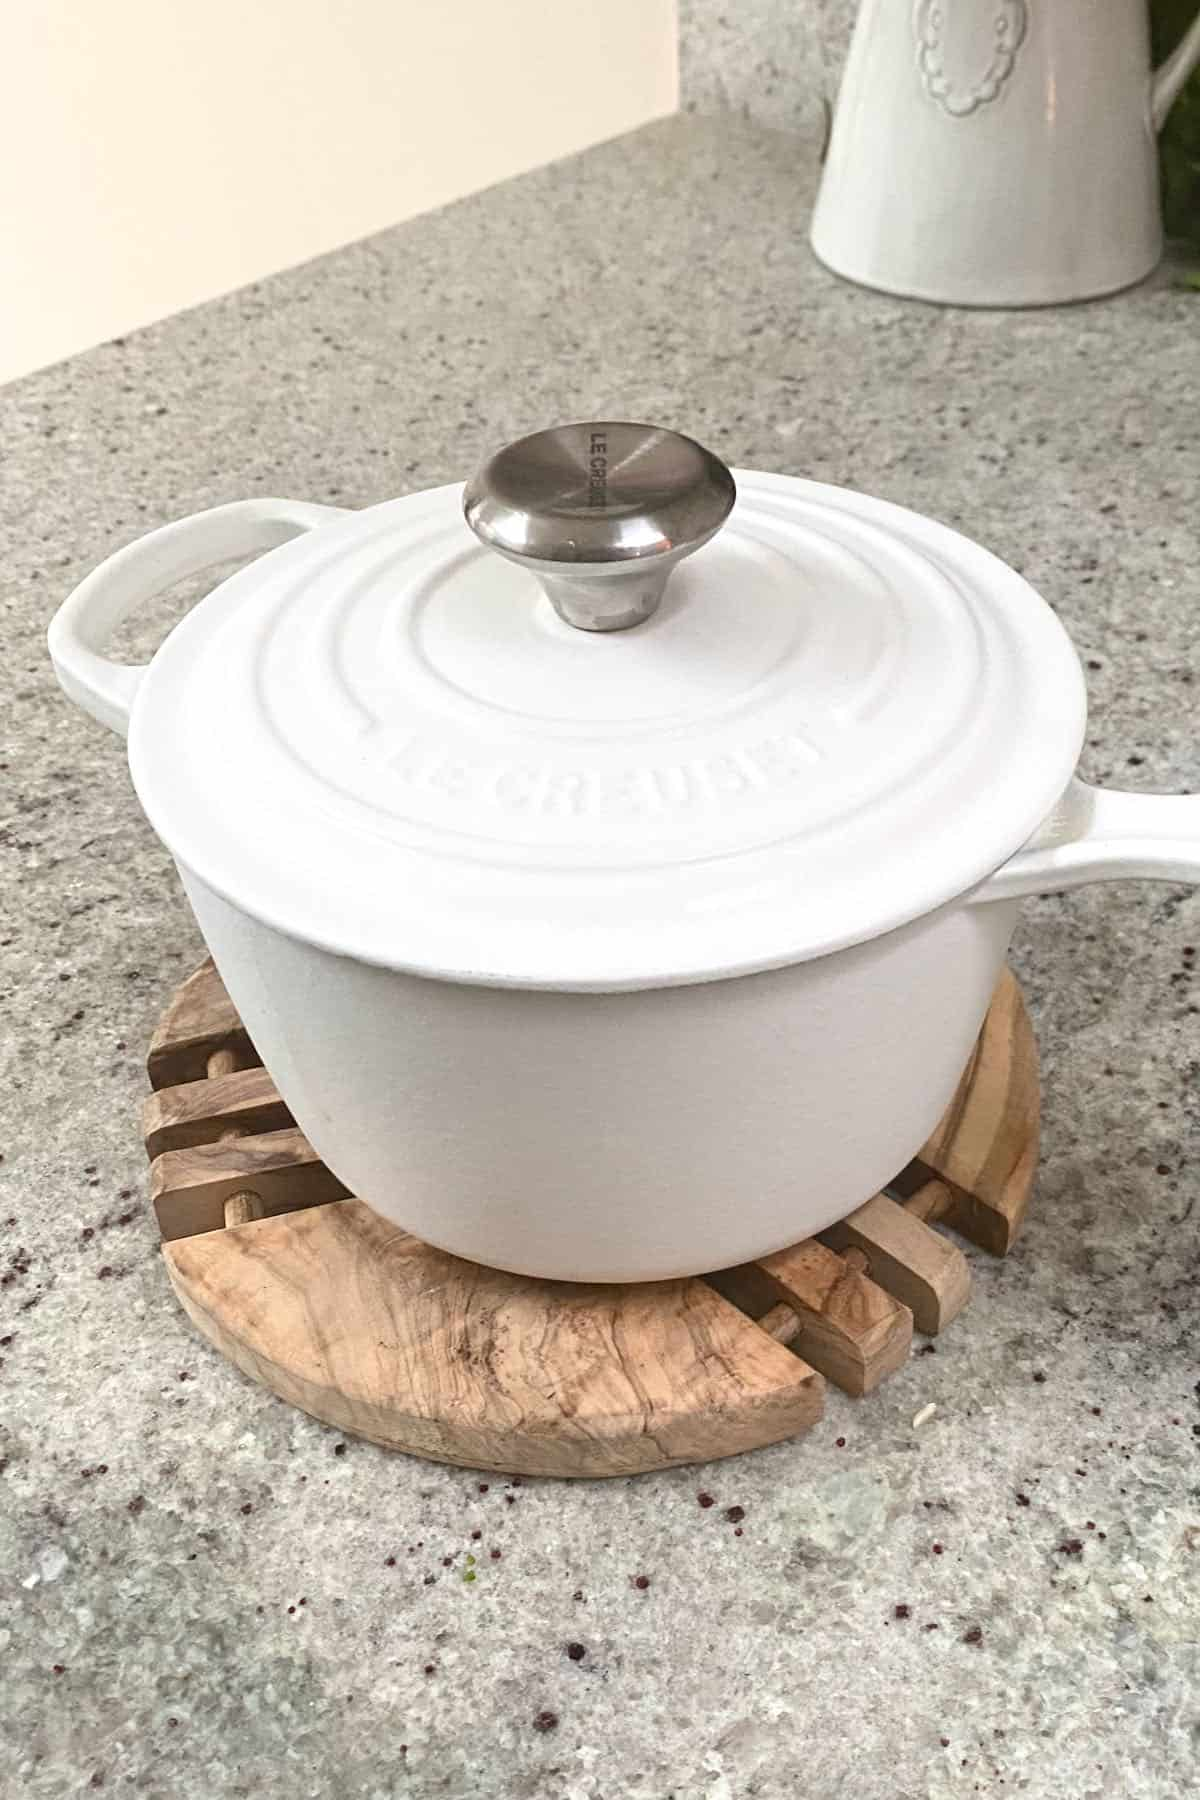 Steaming rice in a pot